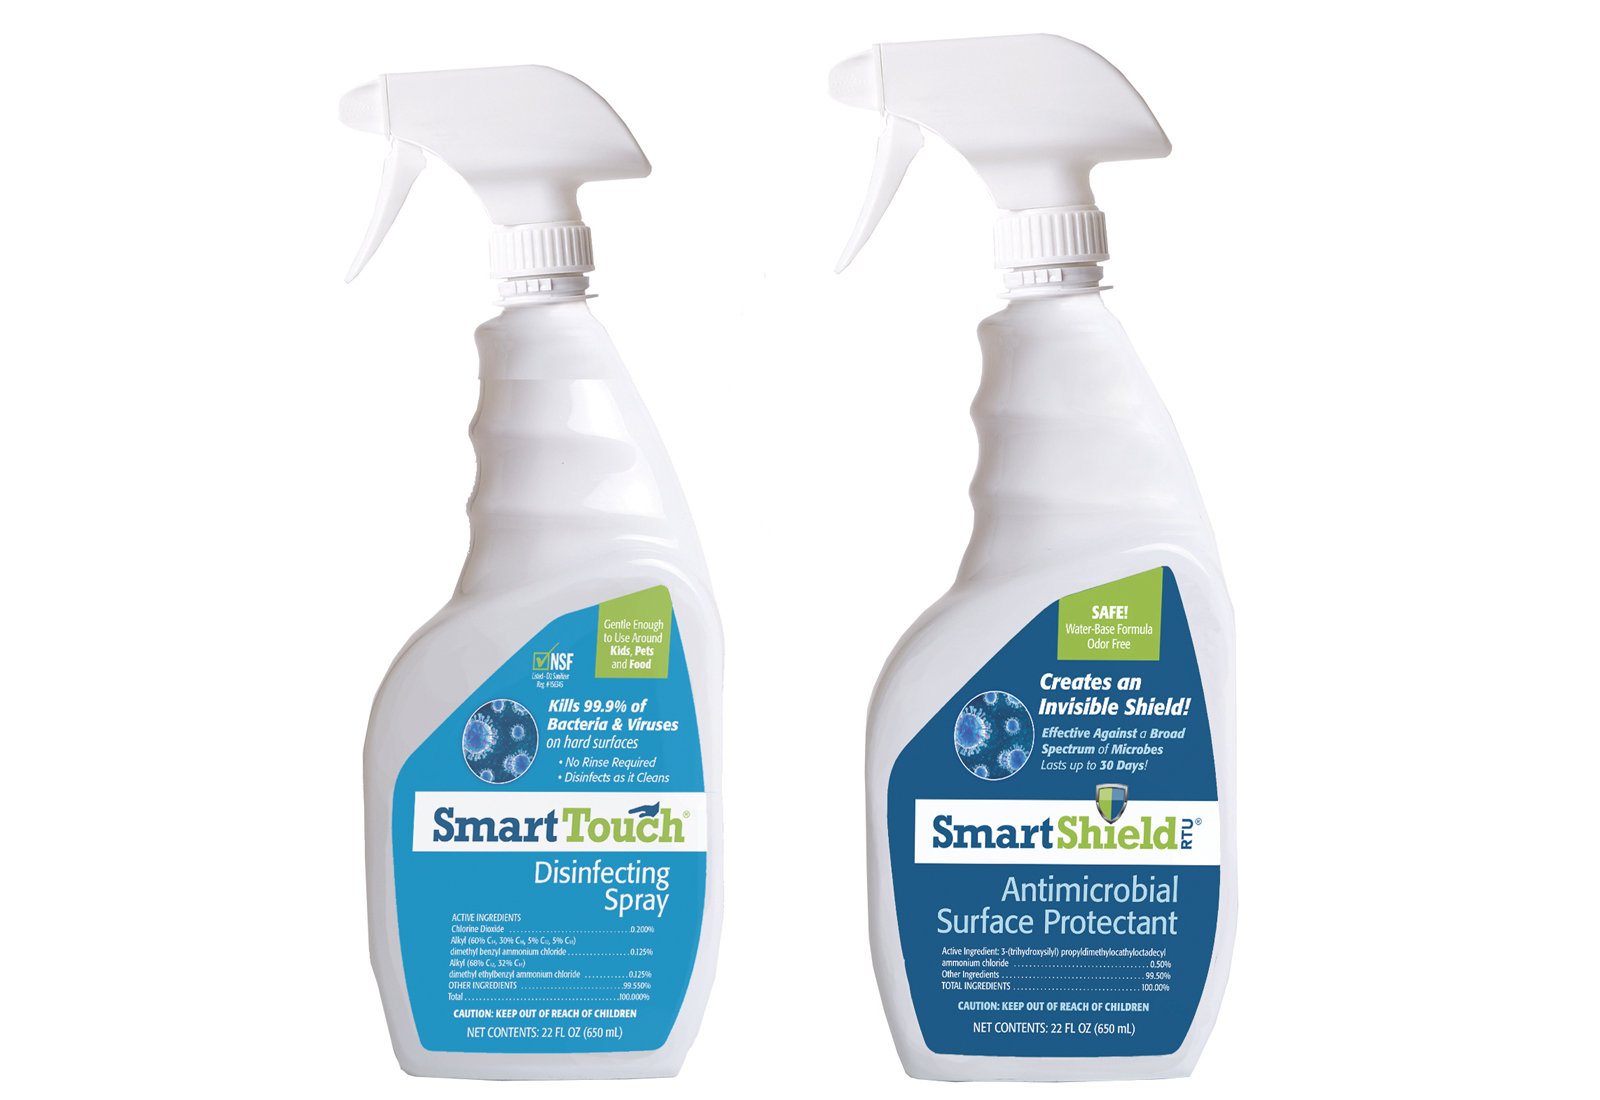 Smart Shield & Smart Touch Product Image